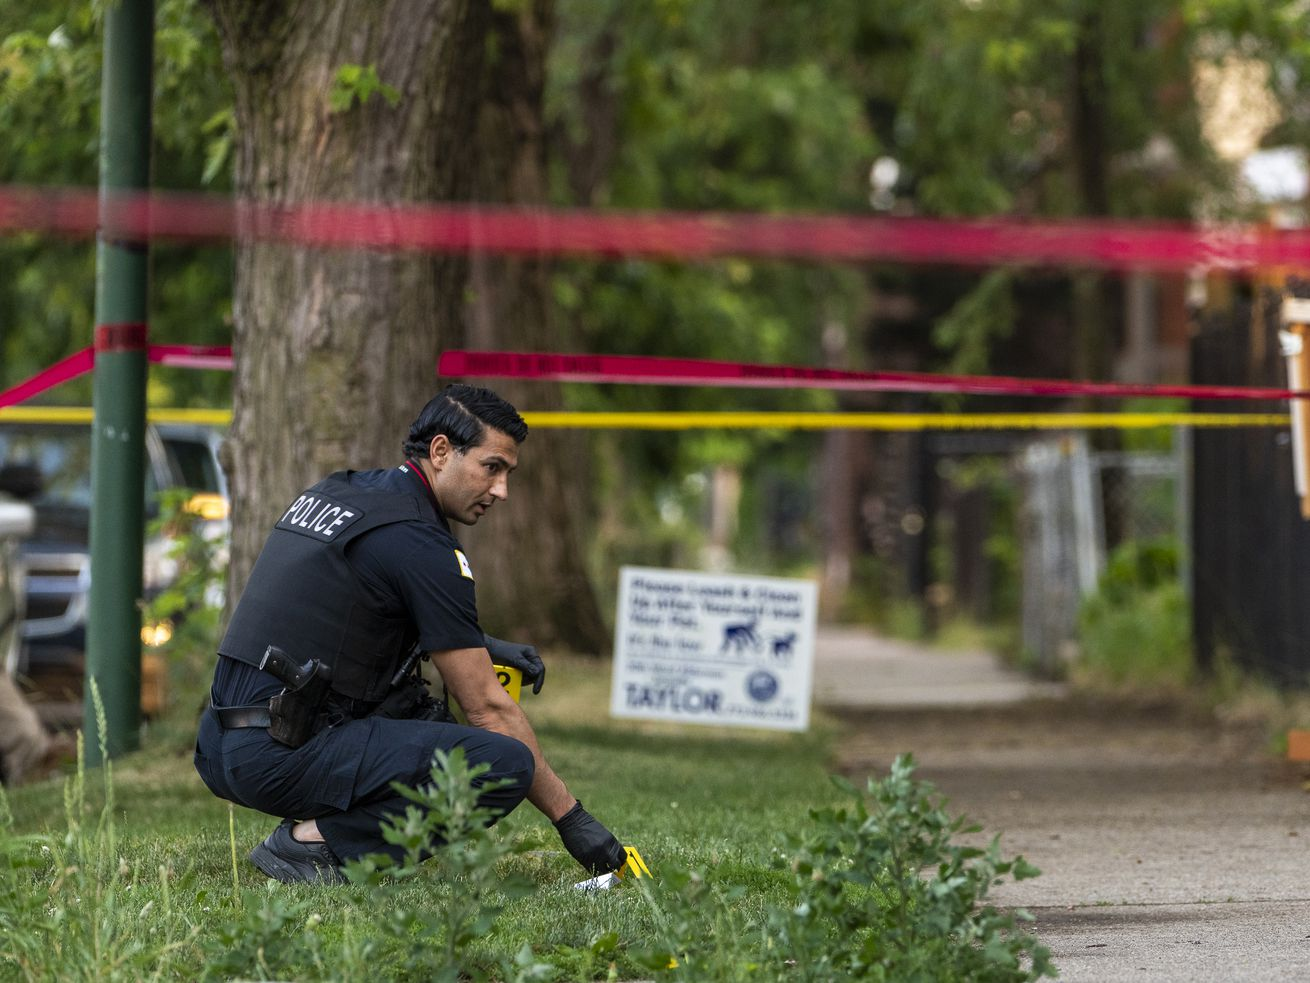 Chicago police work the scene where a 14-year-old boy was critically wounded in a shooting in the 6500 block of South Champlain Ave, in the West Woodlawn neighborhood, Saturday, June 12, 2021.